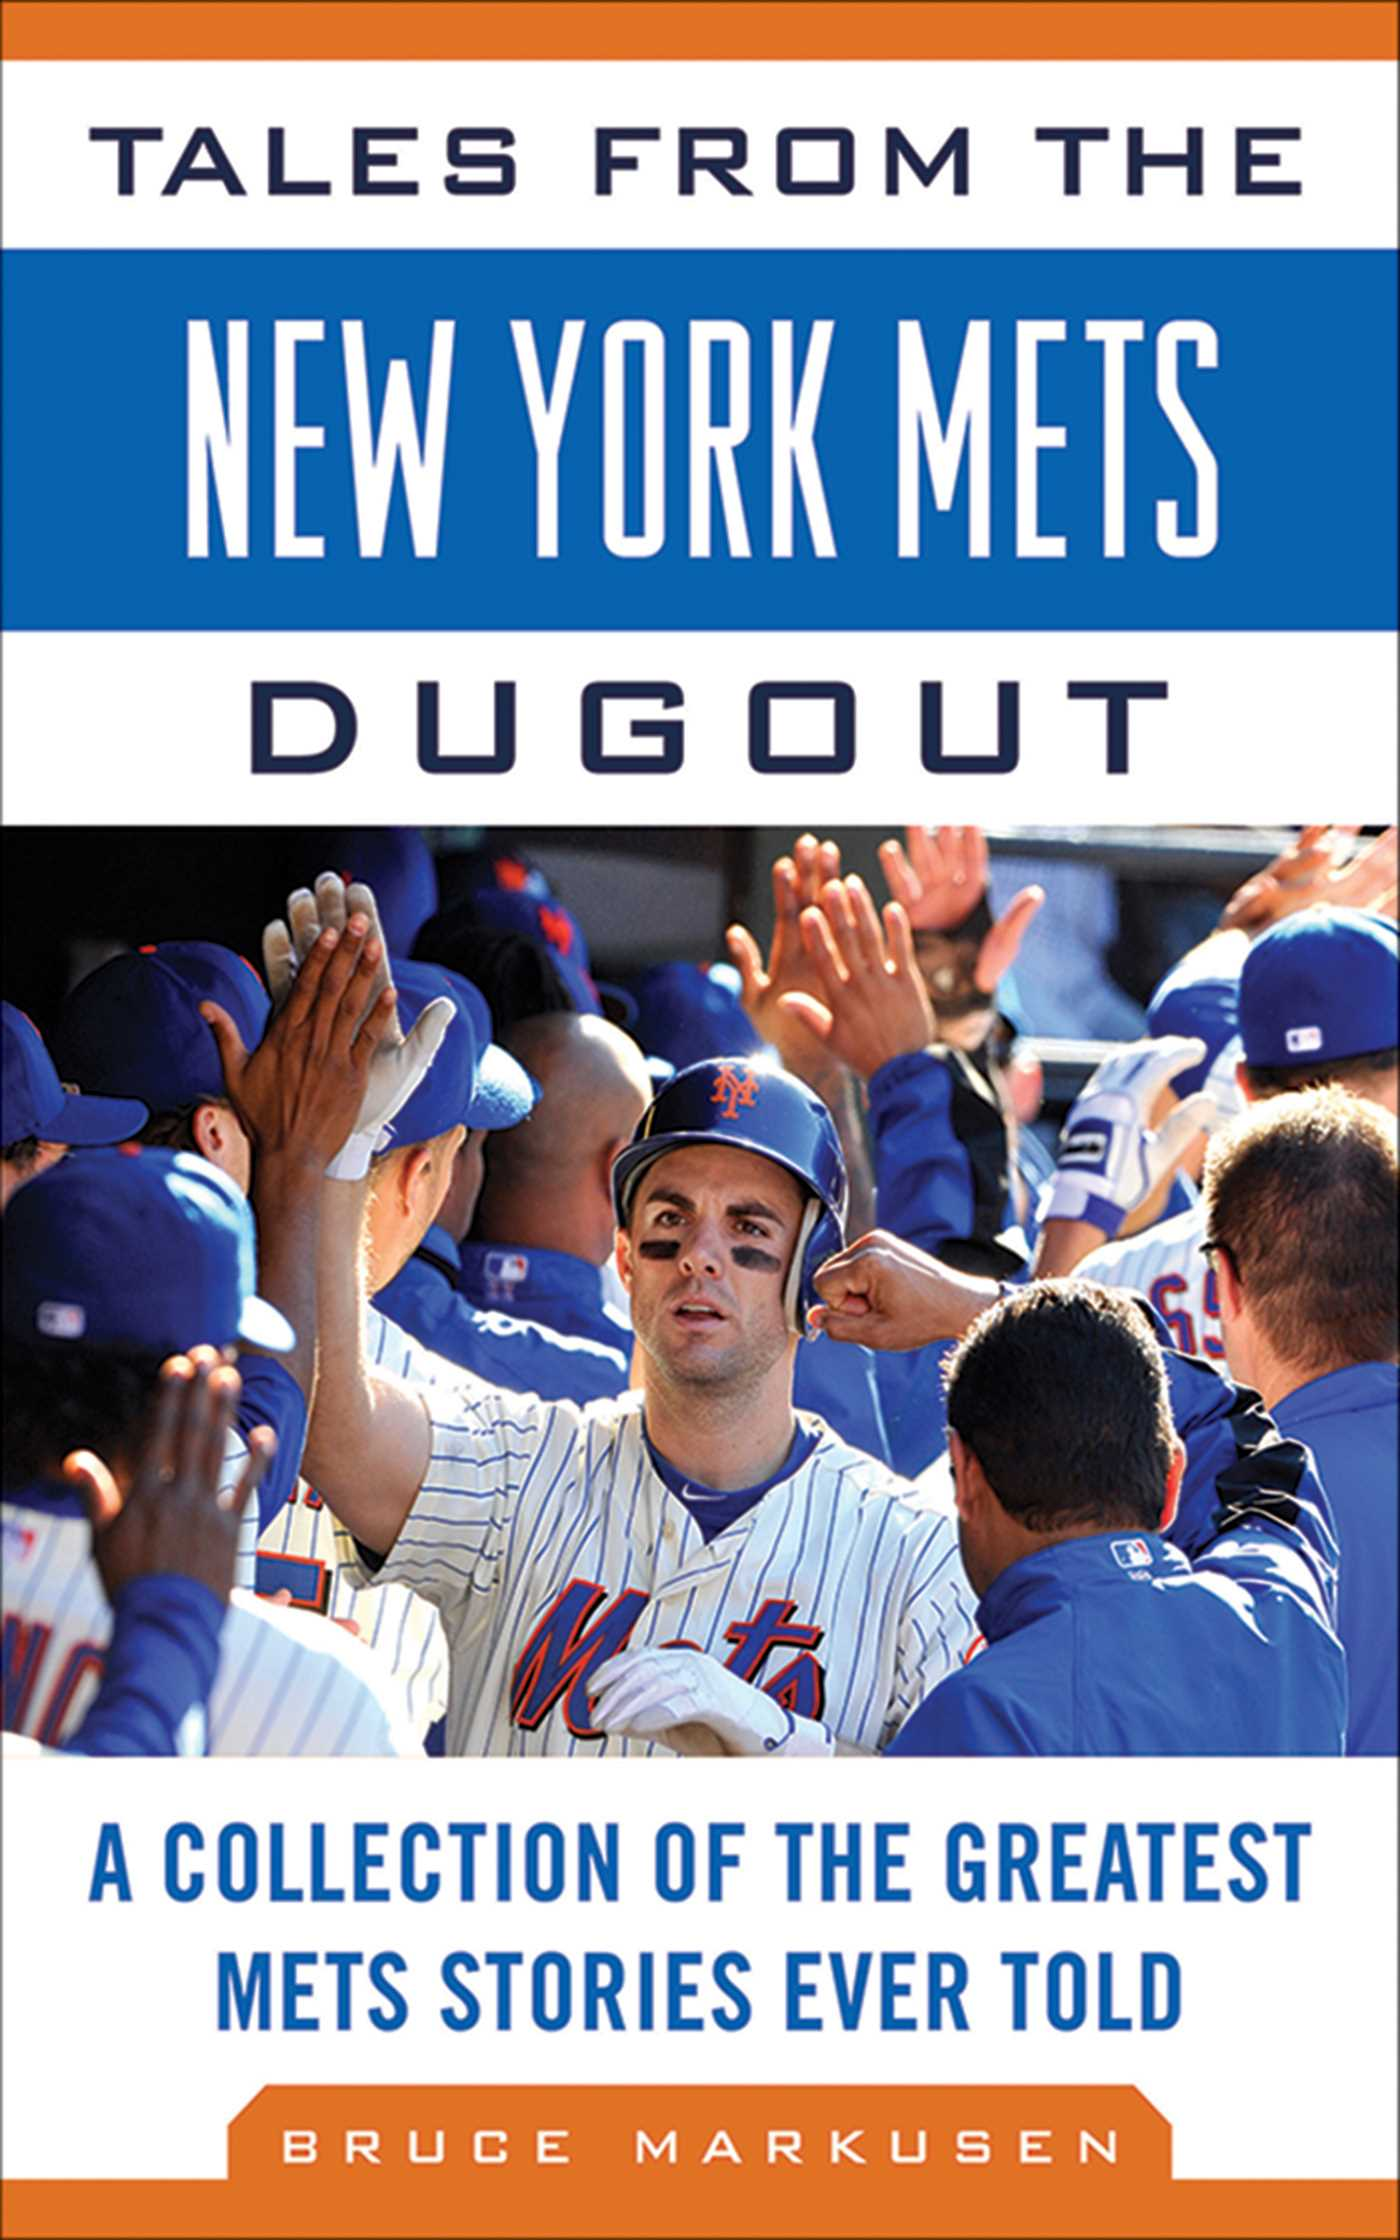 Book Cover Image (jpg): Tales from the New York Mets Dugout